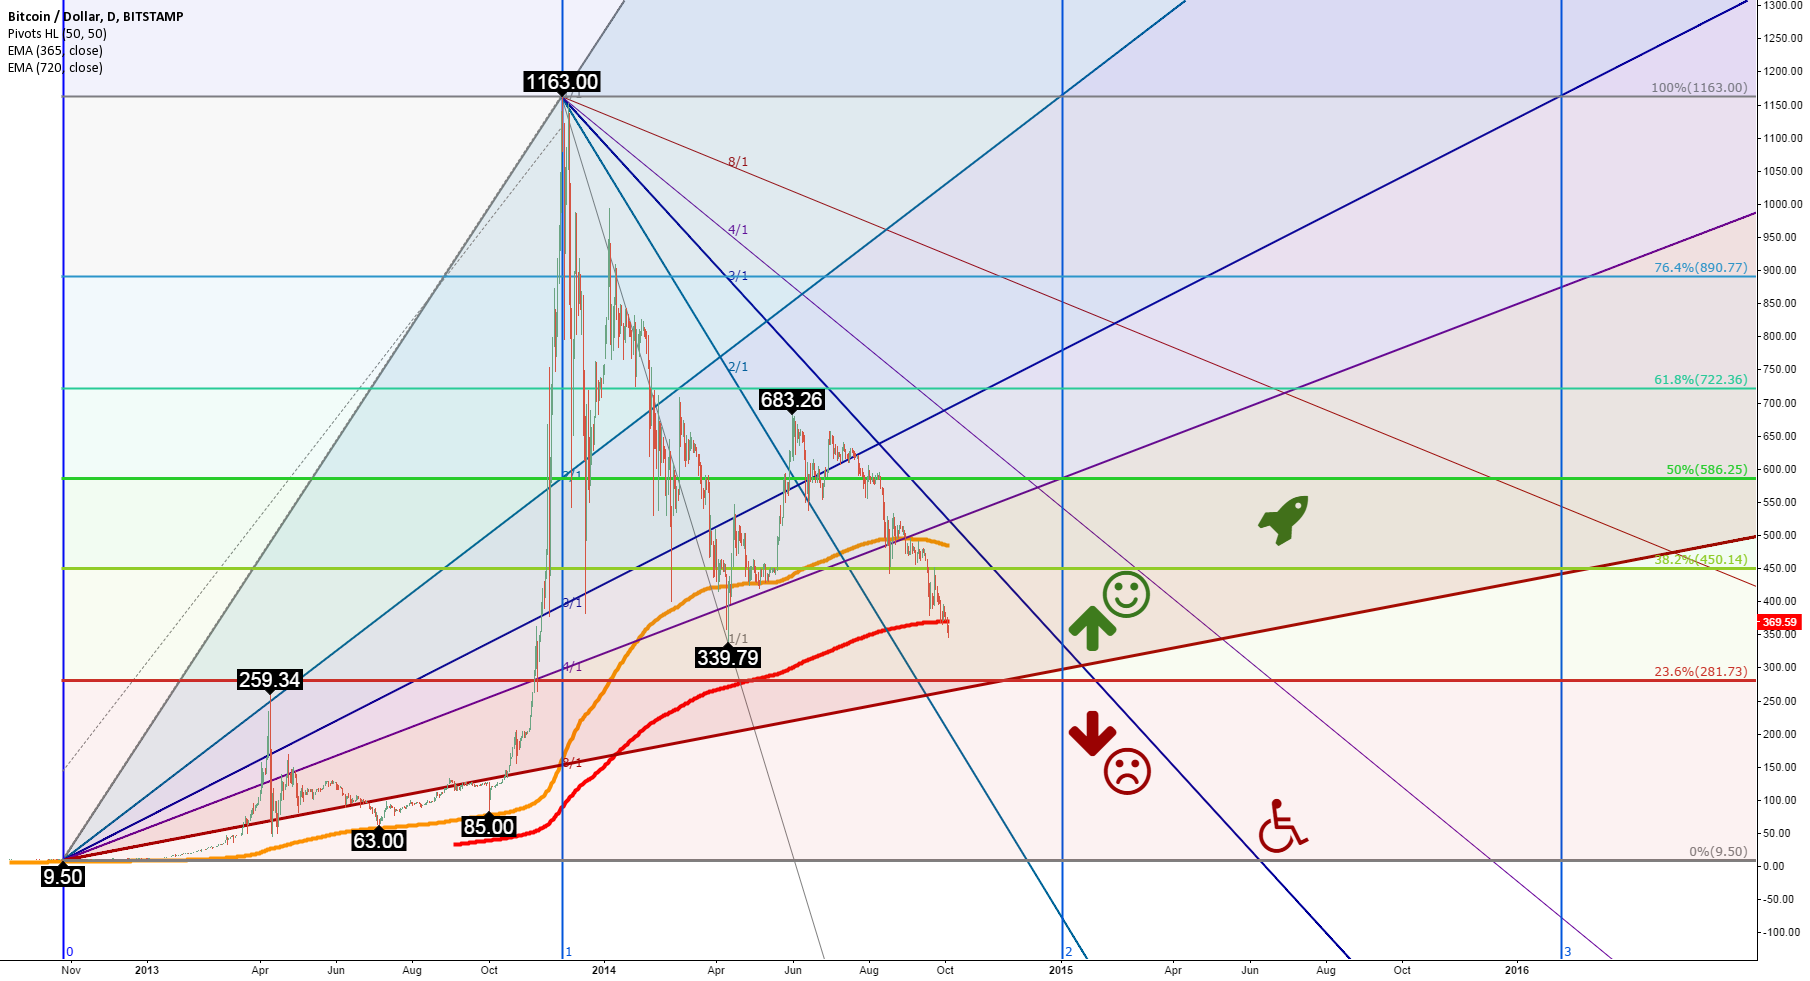 Bitcoin price doom analysis: Why Bitcoin might crash to $85-$110